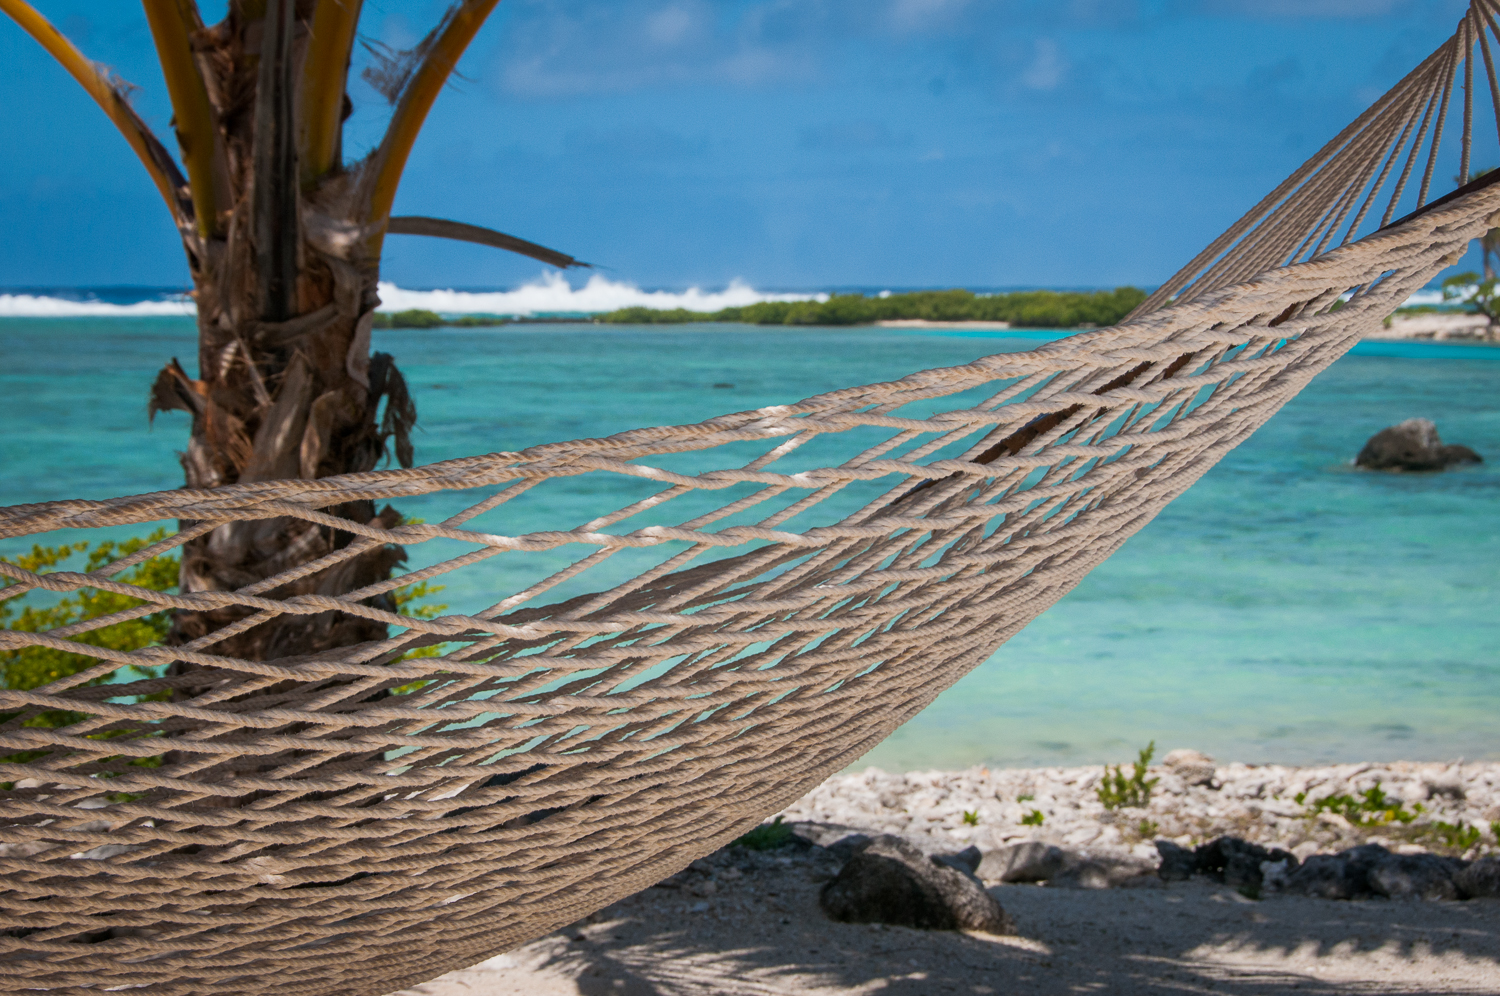 Hammock in Paradise, Cook Islands